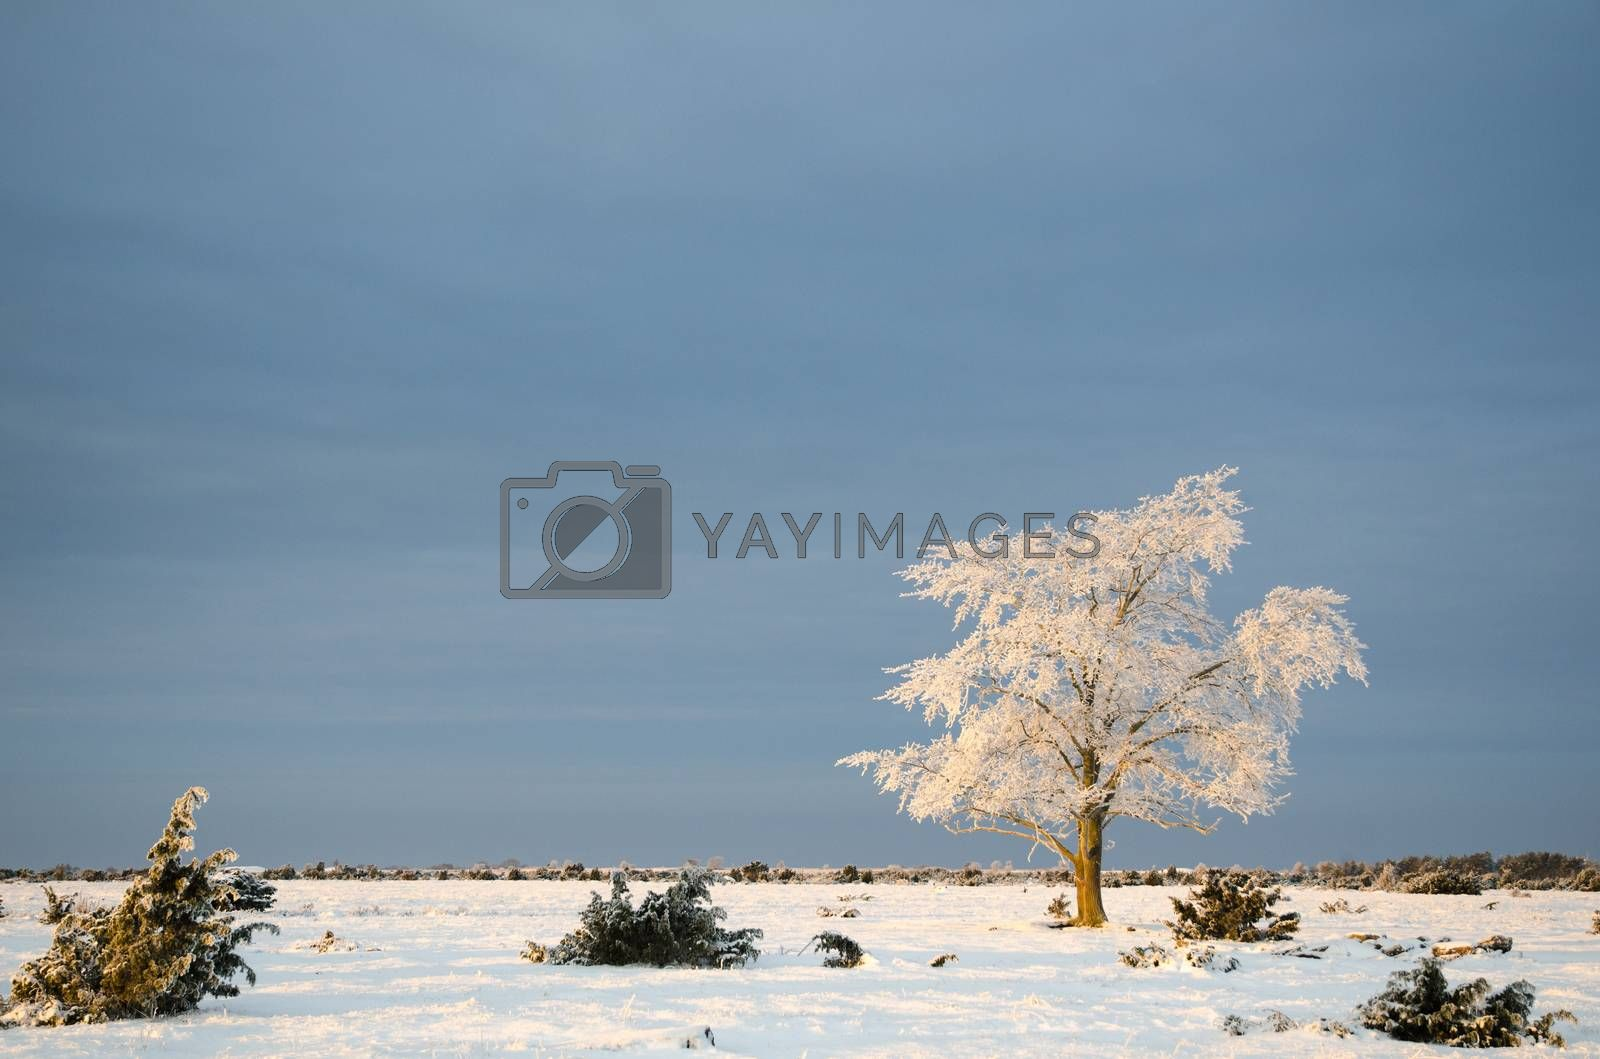 Royalty free image of Alone frosty tree in a plain landscape by olandsfokus